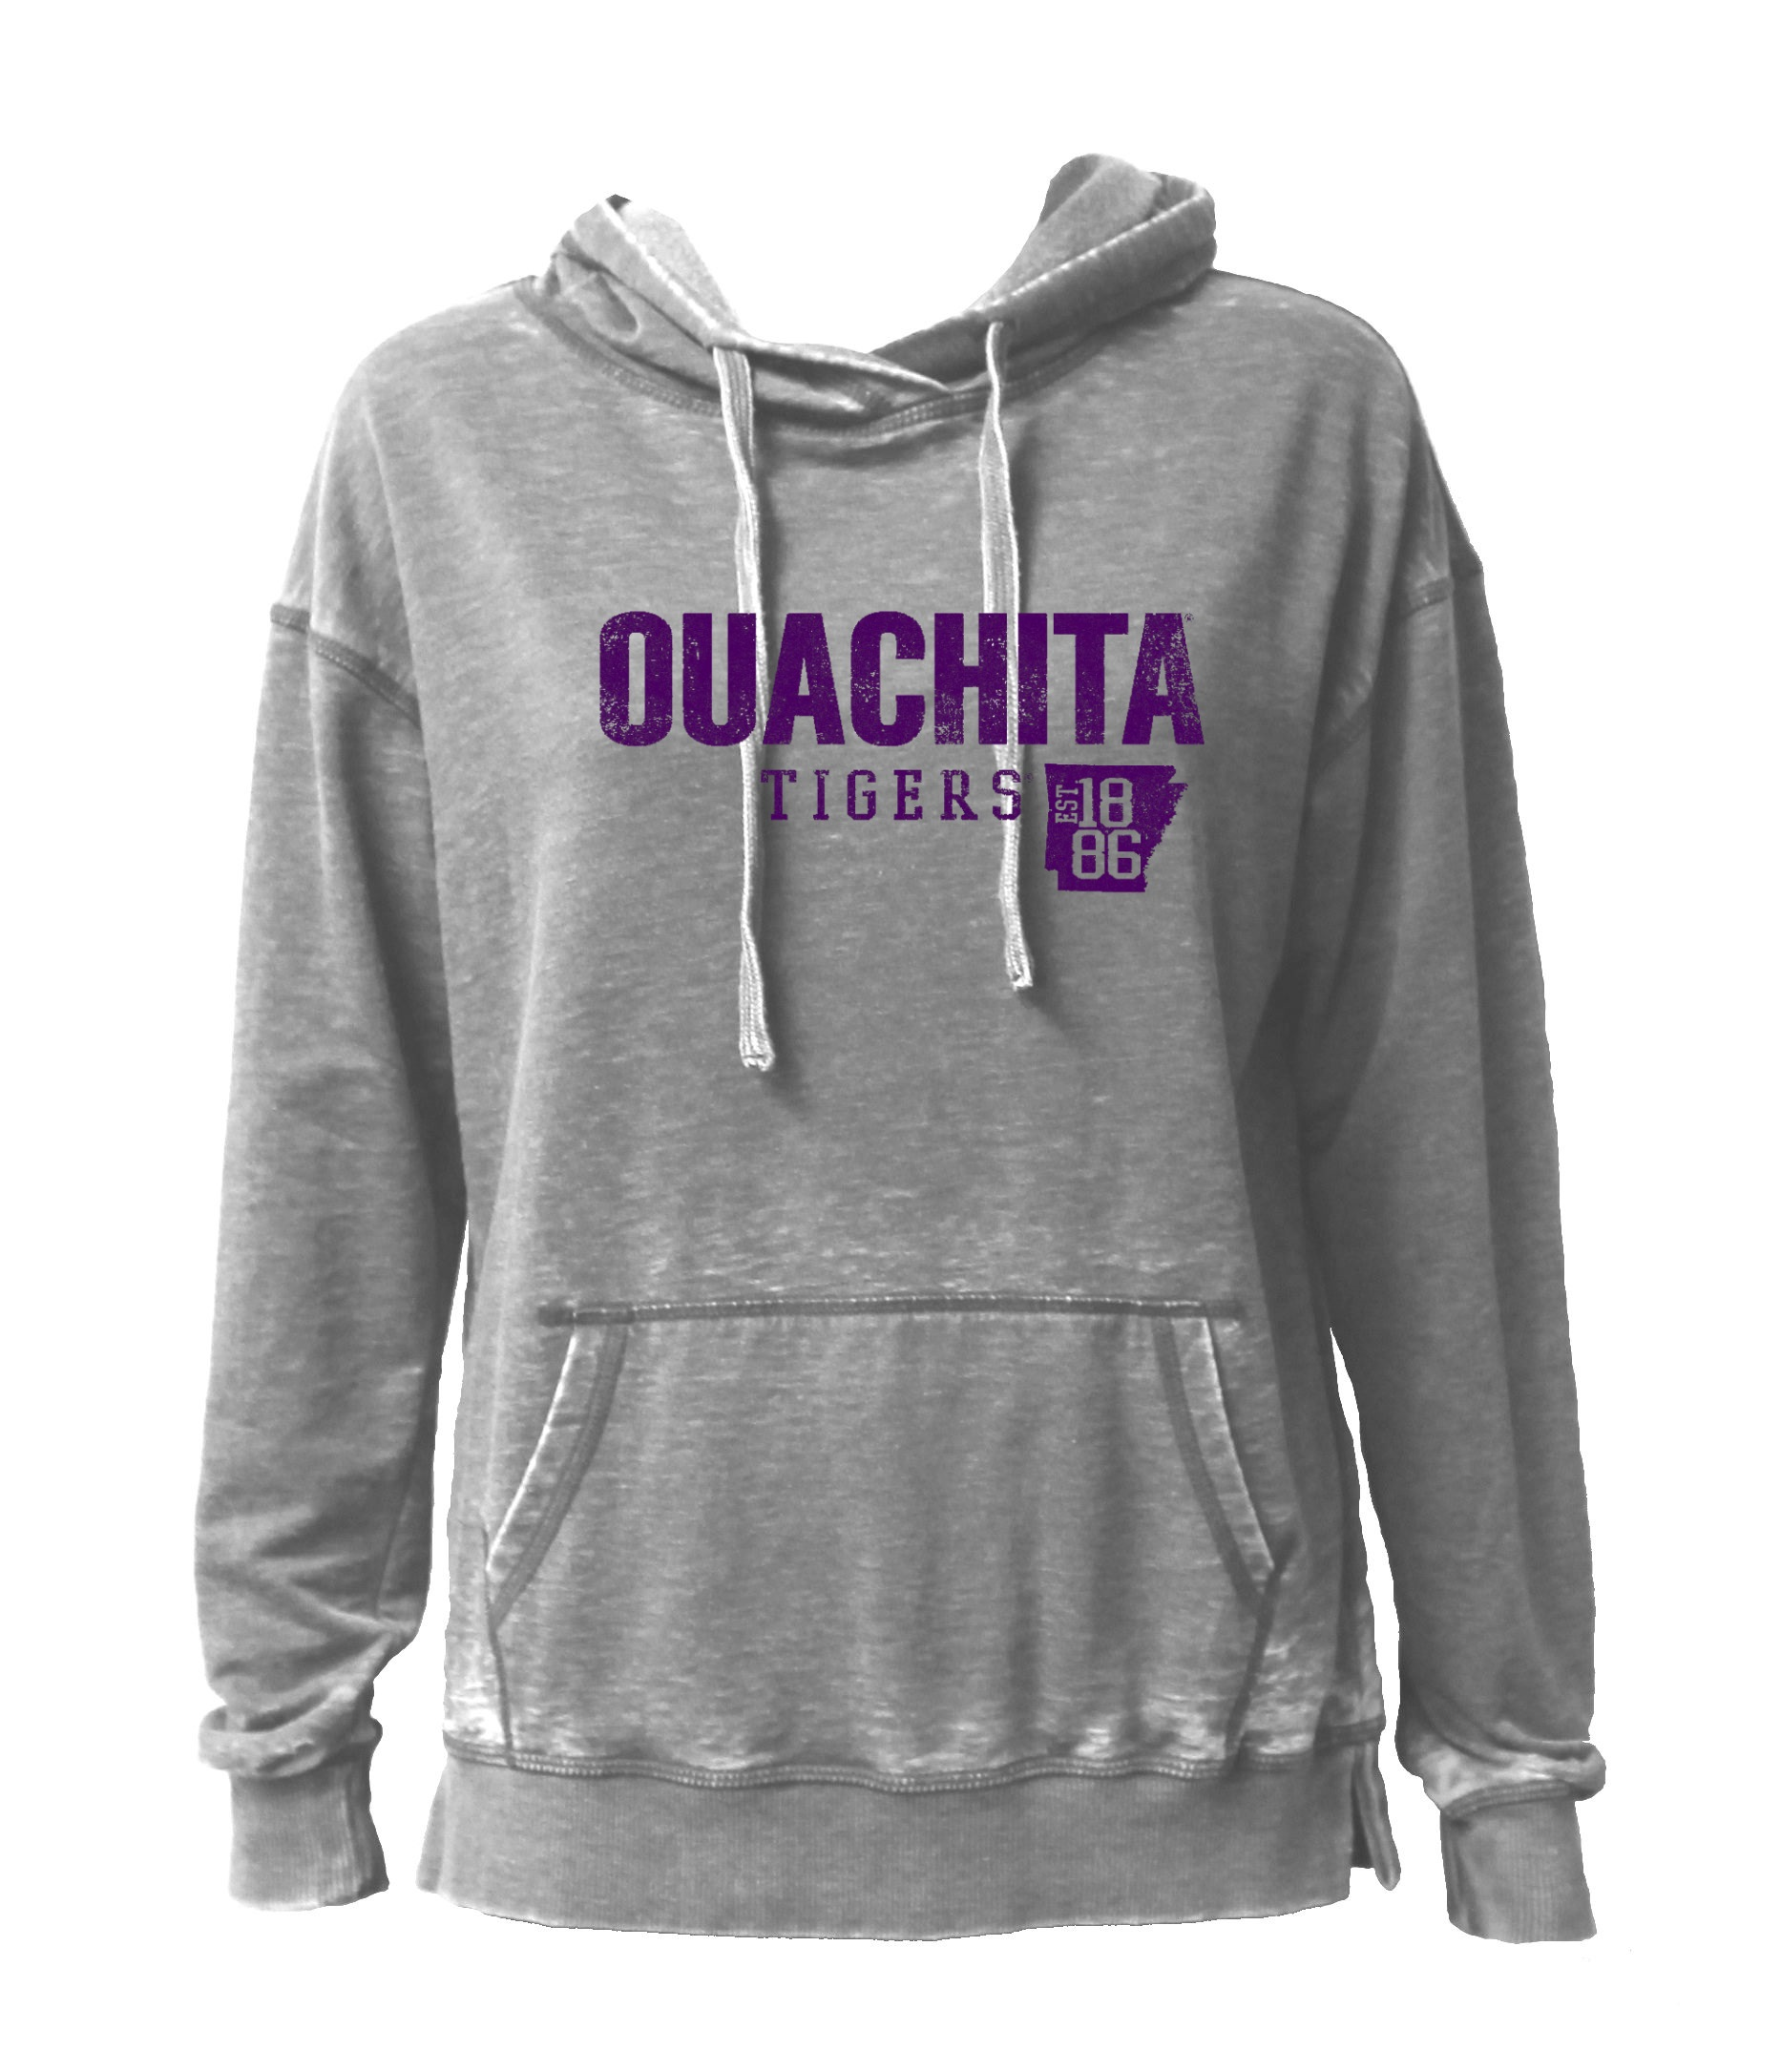 OUACHITA TIGERS EST 1886 HOODED PULLOVER